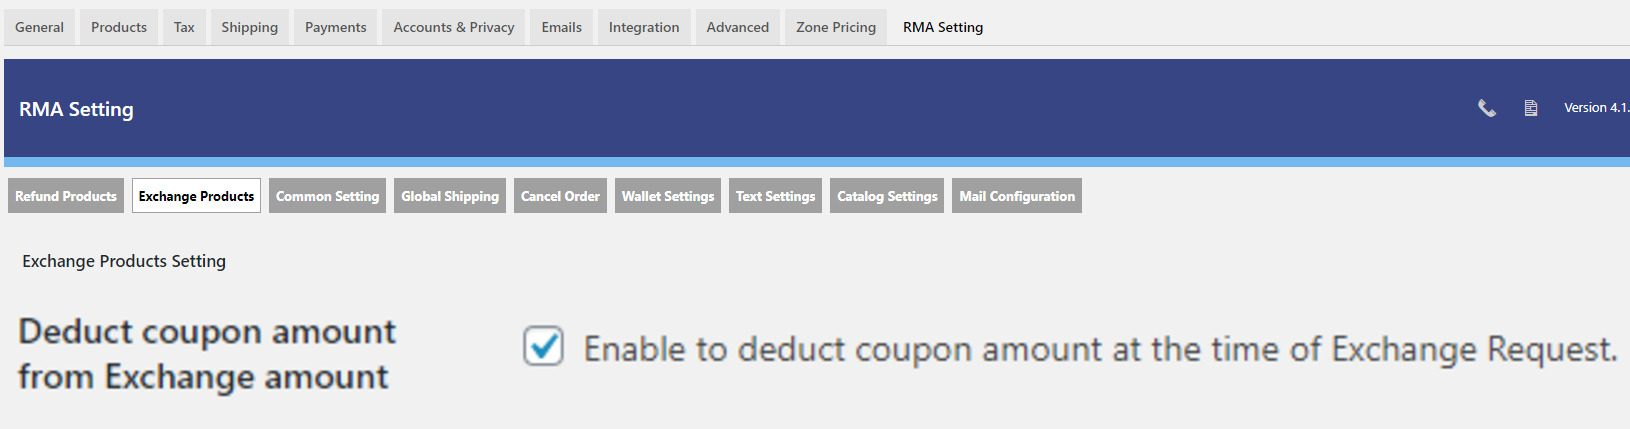 exchange_deduct_coupon